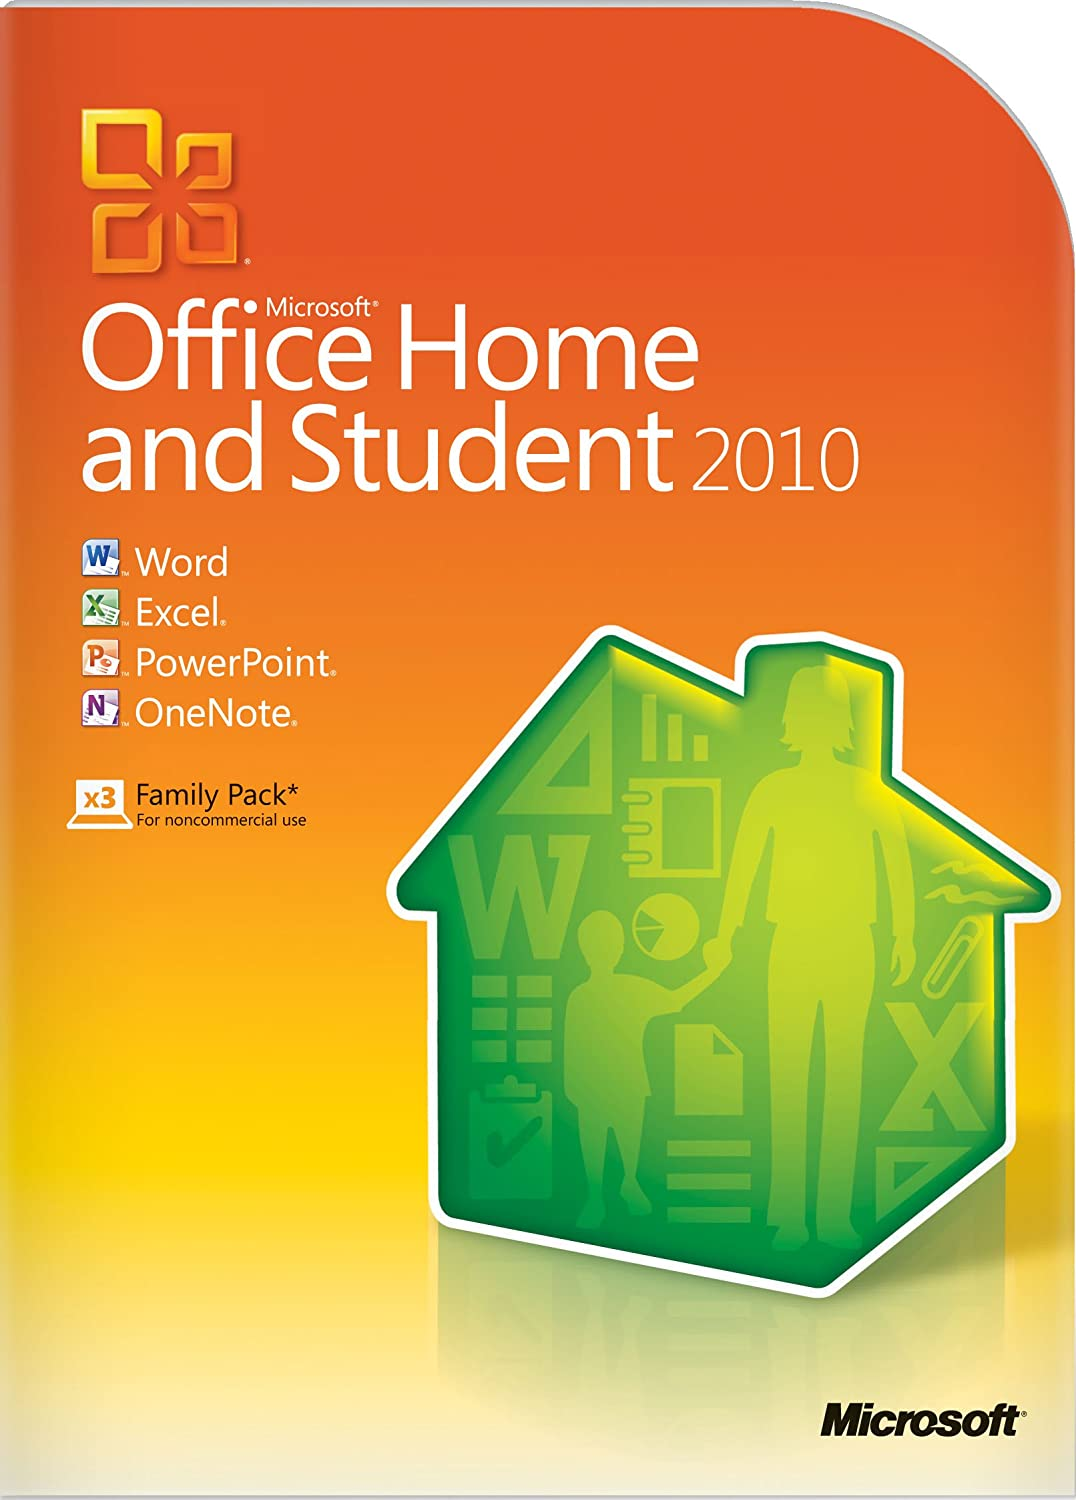 microsoft 2010 office home and student download